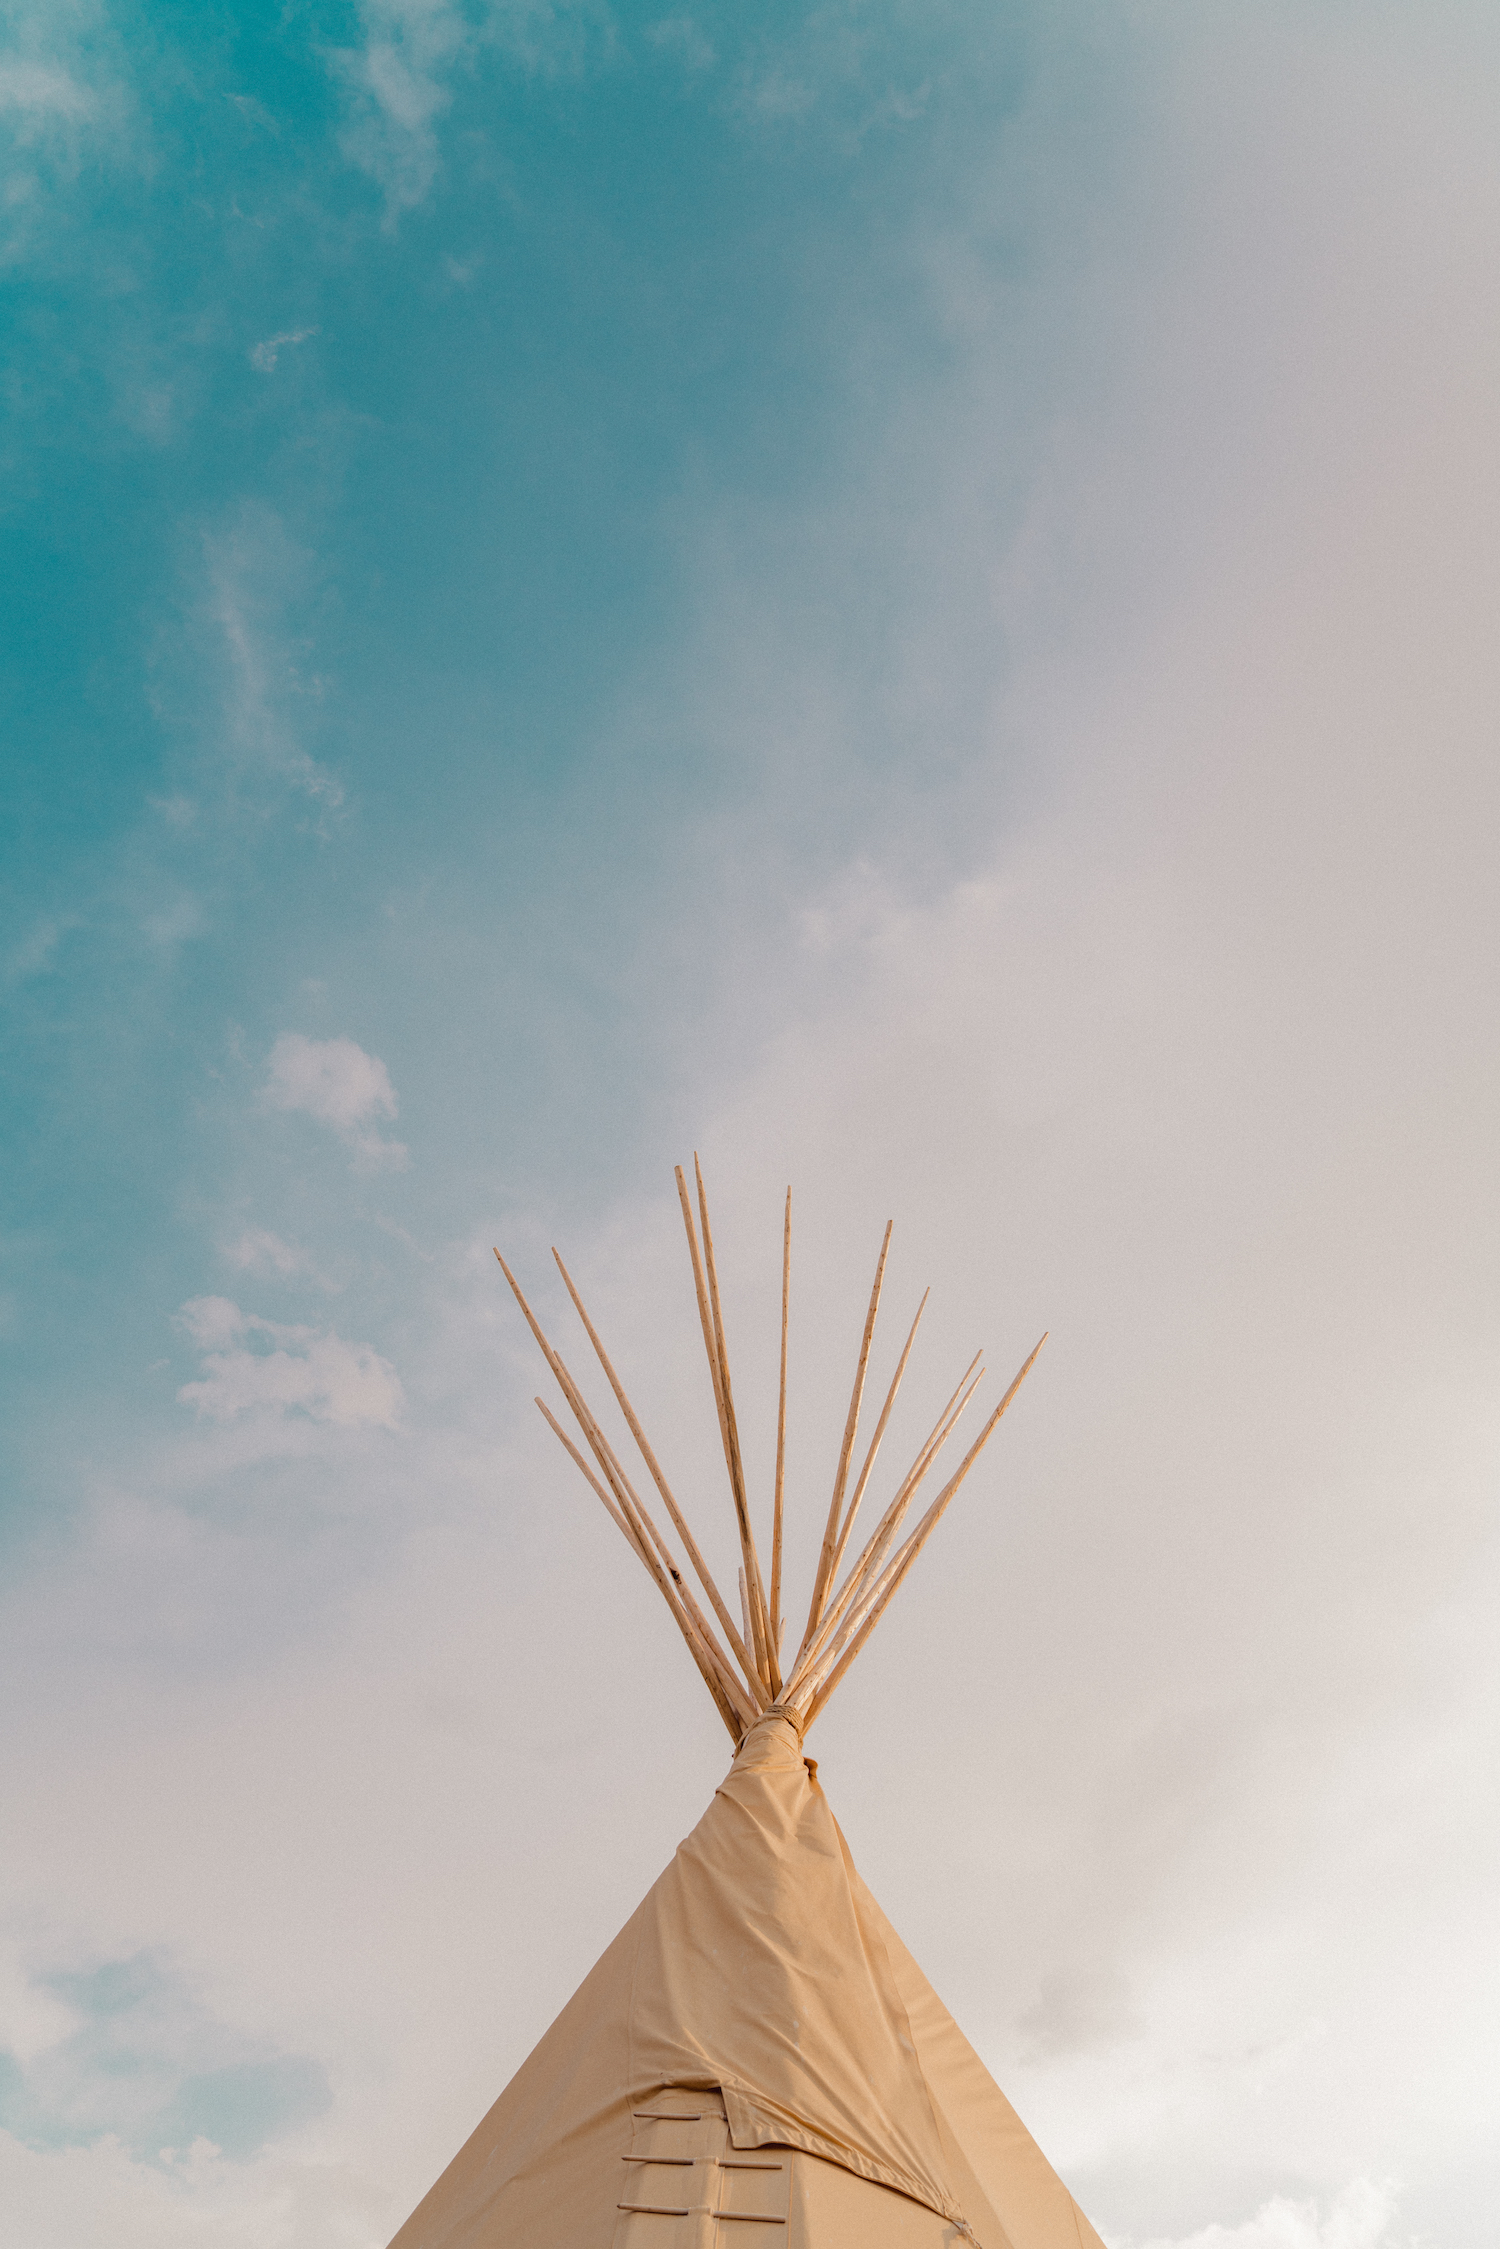 The top of a teepee